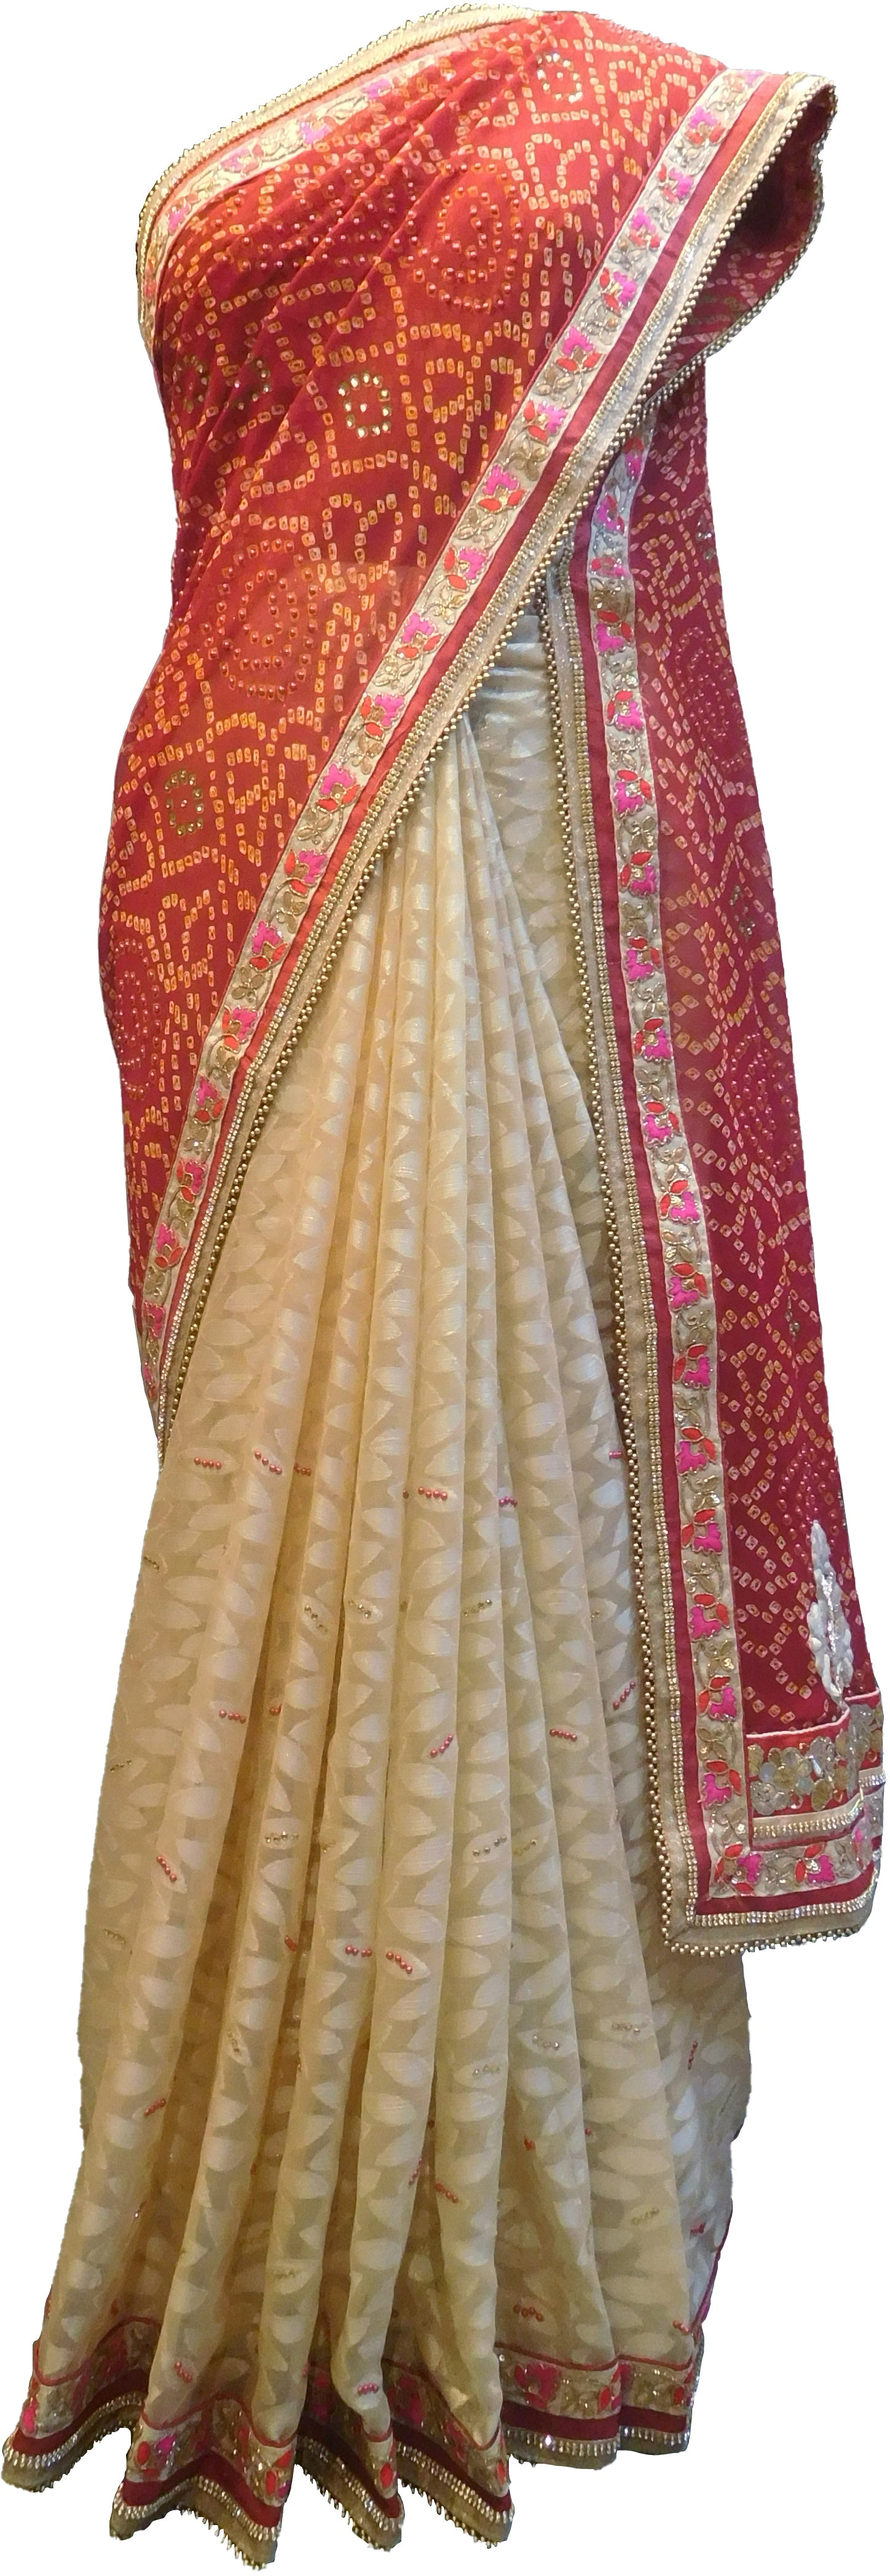 SMSAREE Red & Cream Designer Wedding Partywear Georgette & Brasso Stone Bullion Thread Sequence & Zari Hand Embroidery Work Bridal Saree Sari With Blouse Piece F360